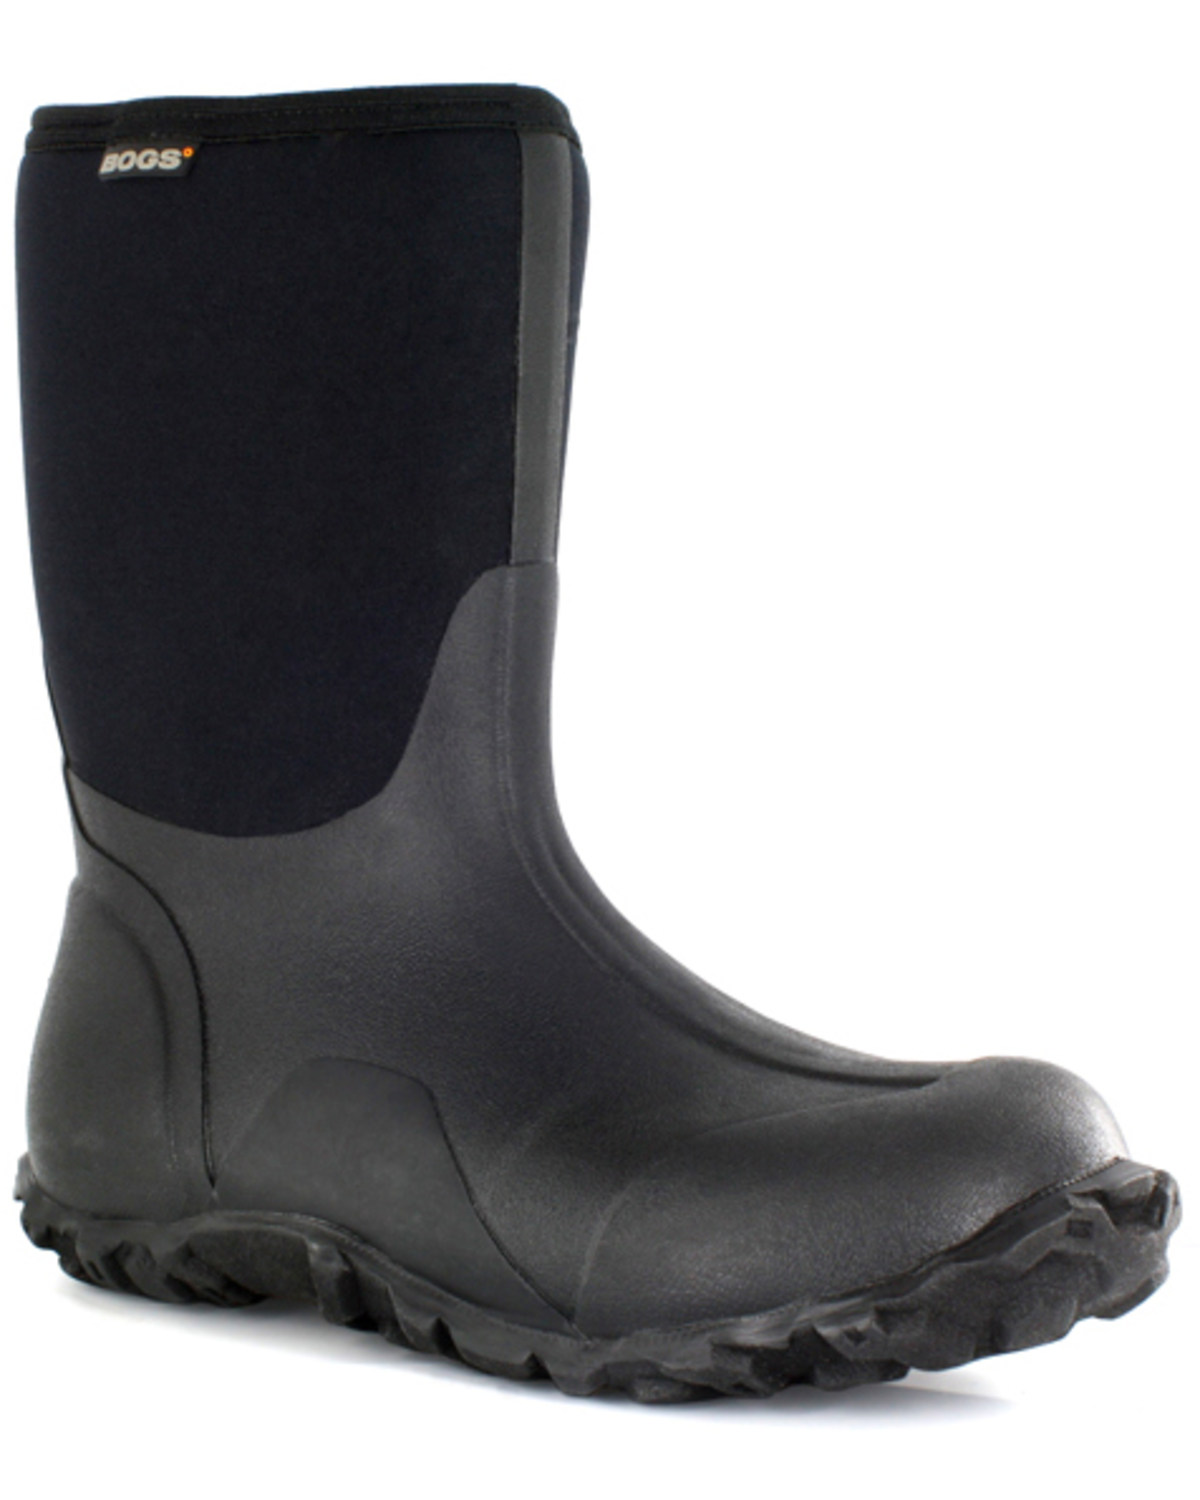 Classic Mid Muck Boots | Boot Barn